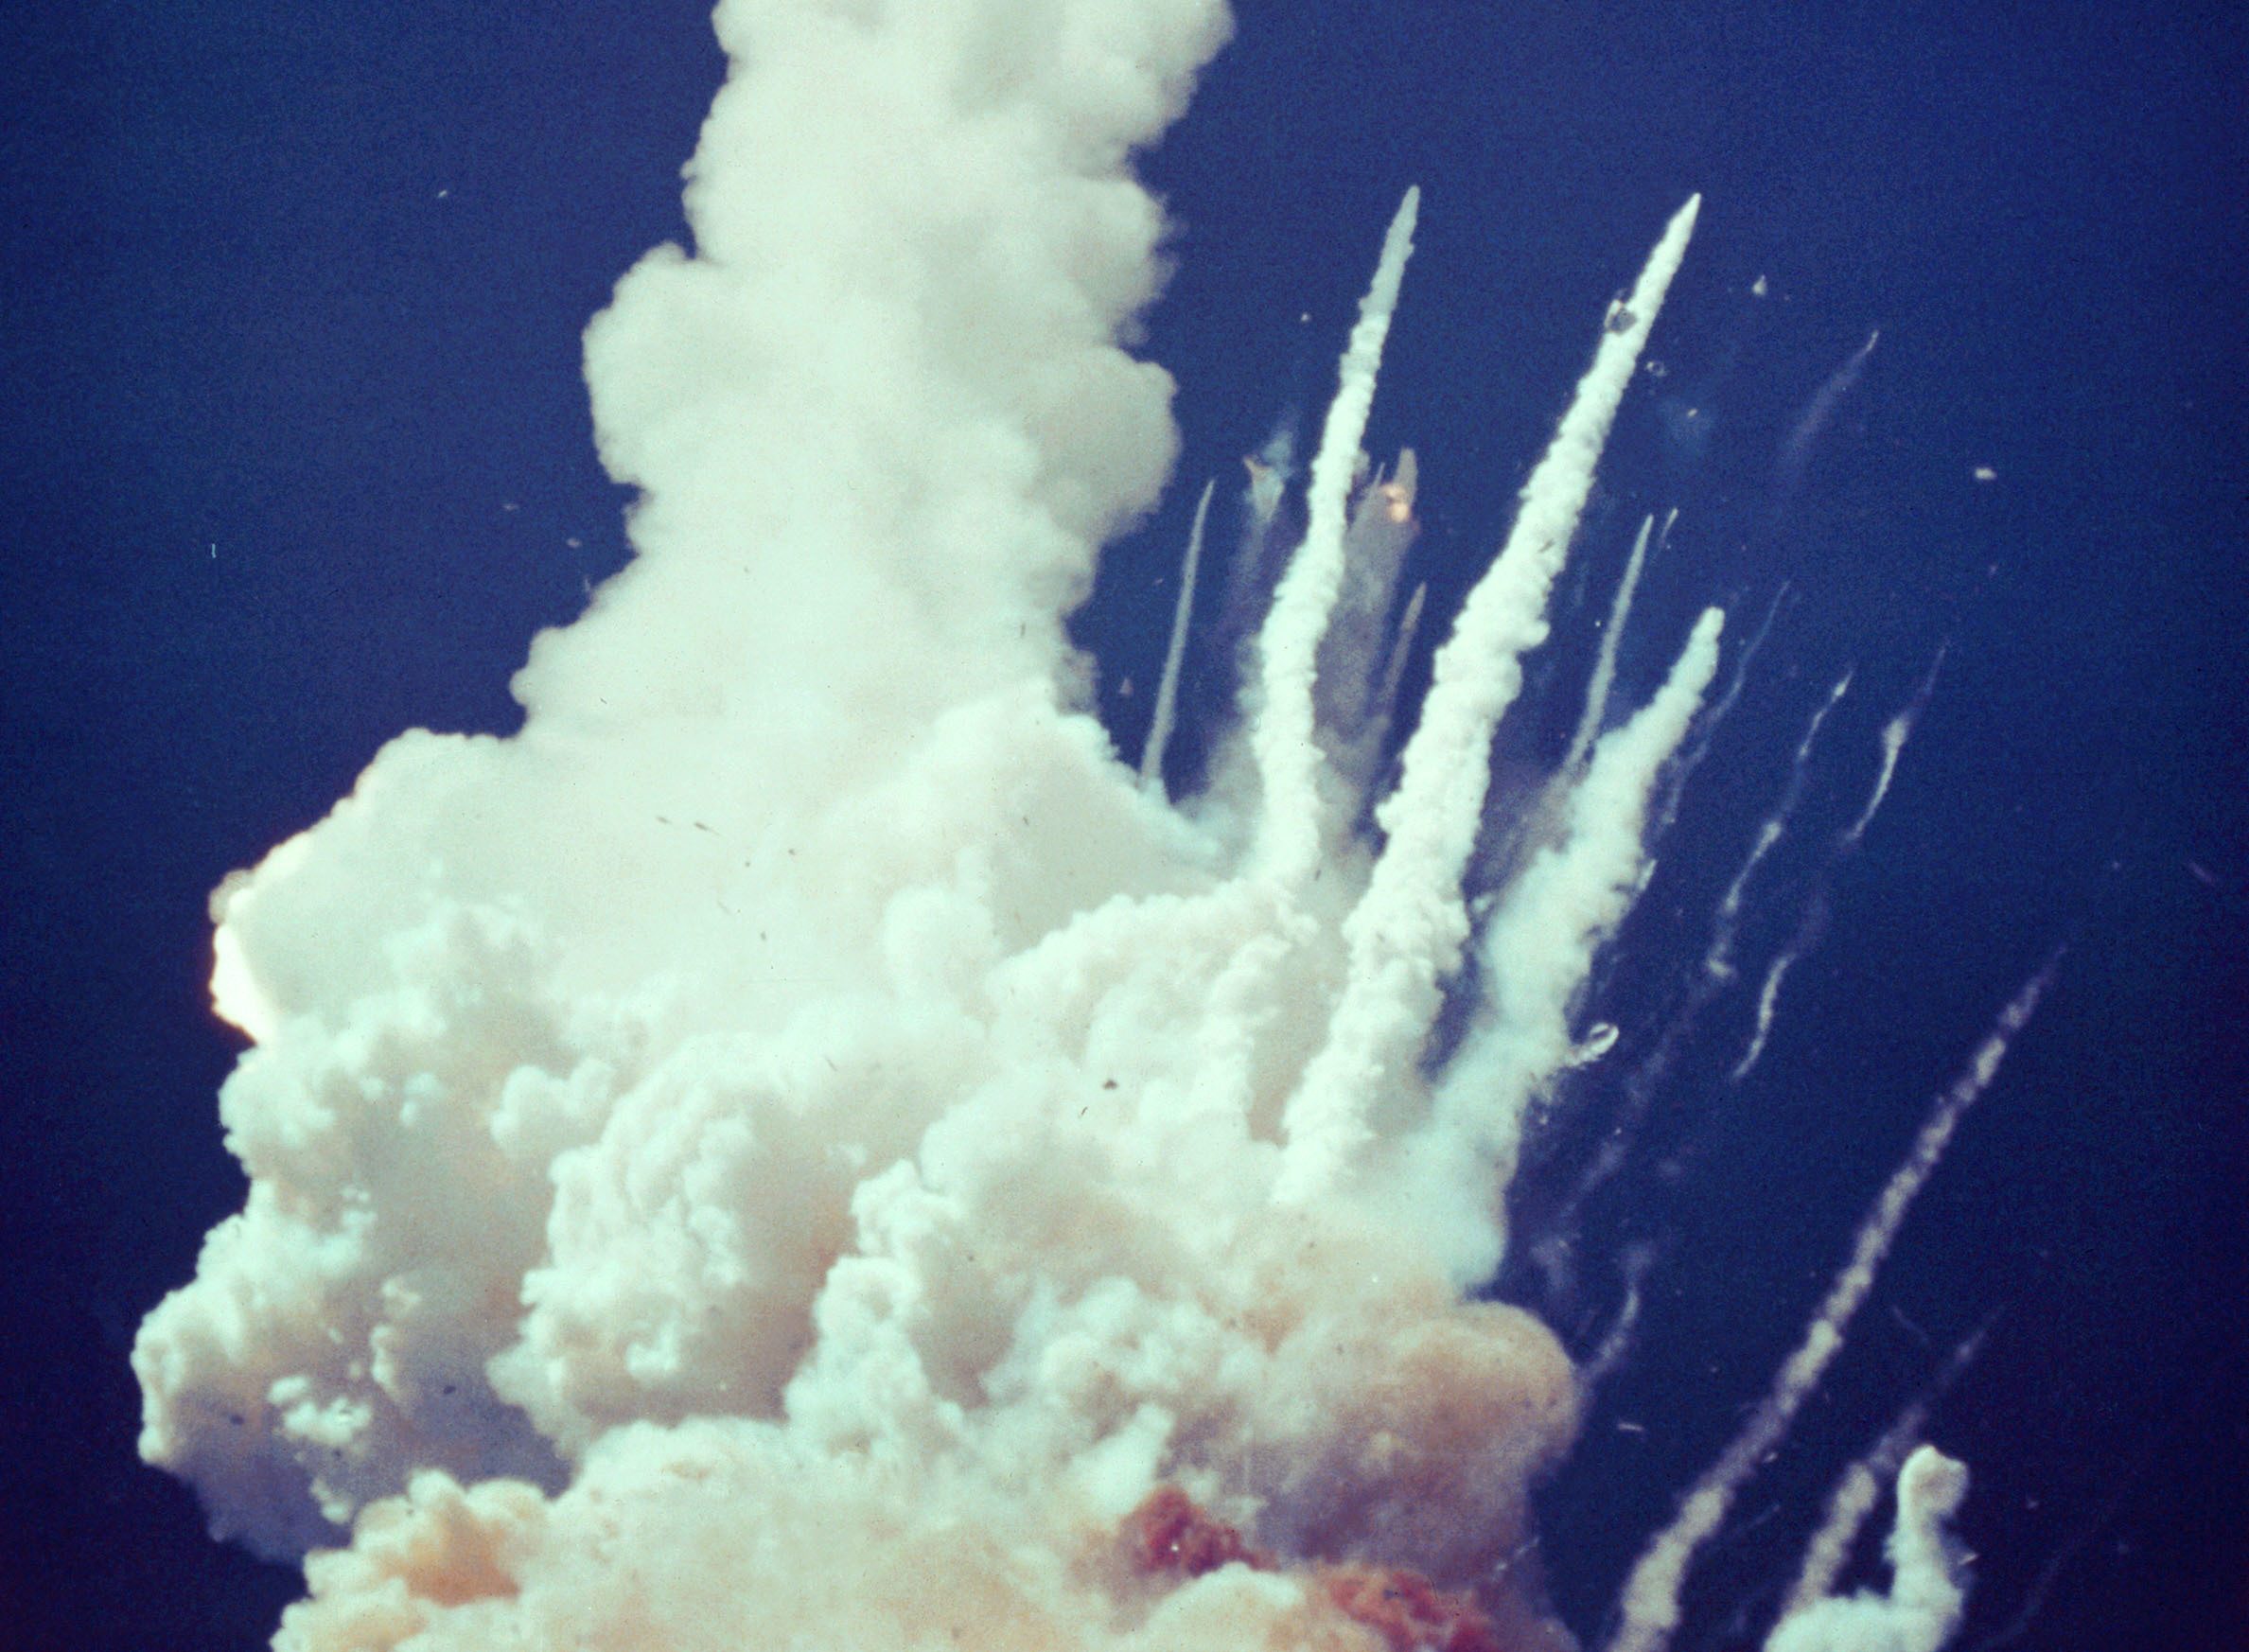 after space shuttle challenger explosion - photo #12